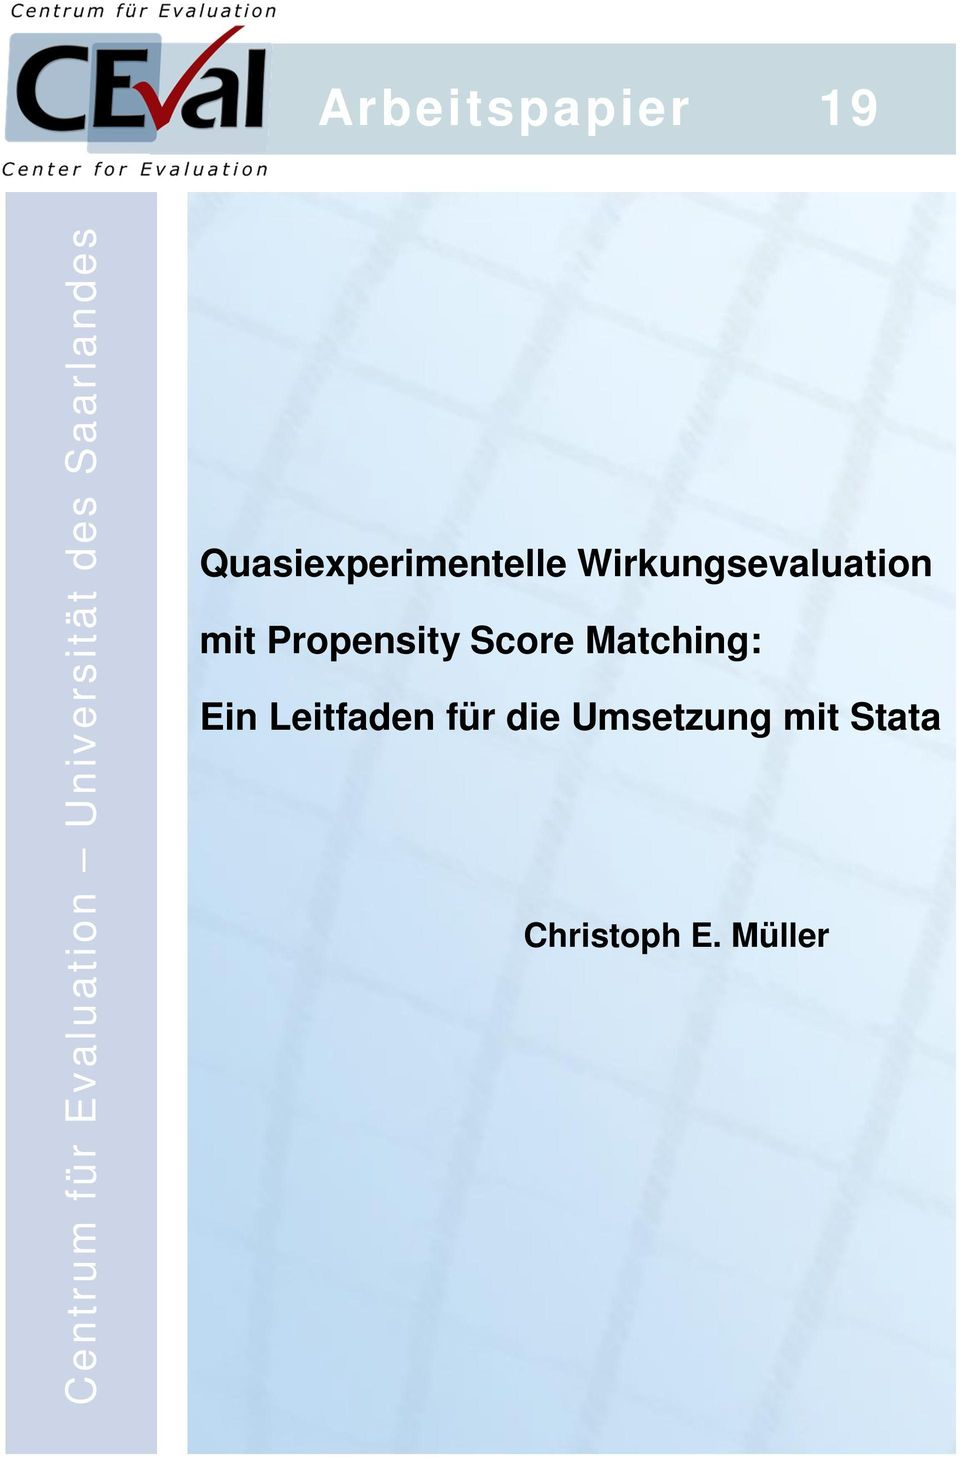 Wirkungsevaluation mit Propensity Score Matching: